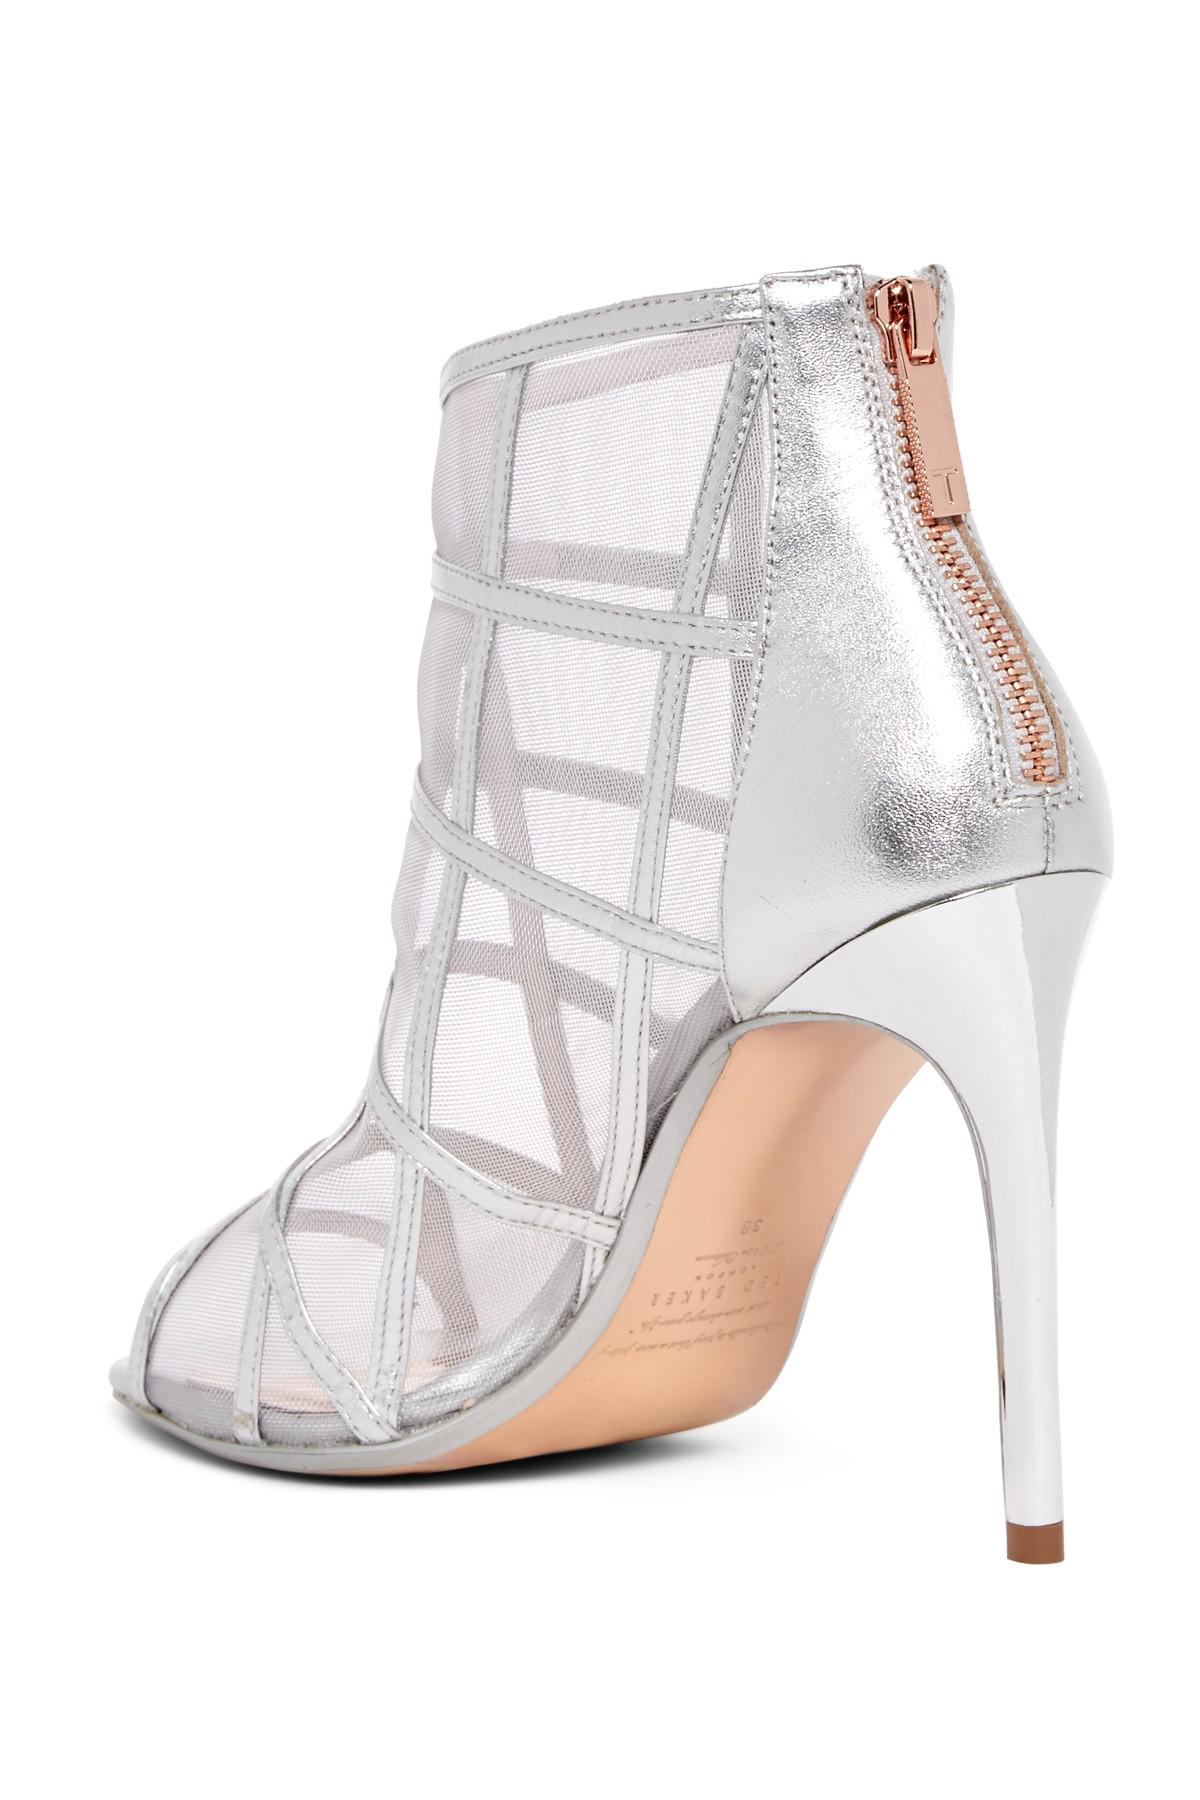 e76f9d0ed067 Ted Baker - Metallic Xstal Caged Leather Bootie - Lyst. View fullscreen